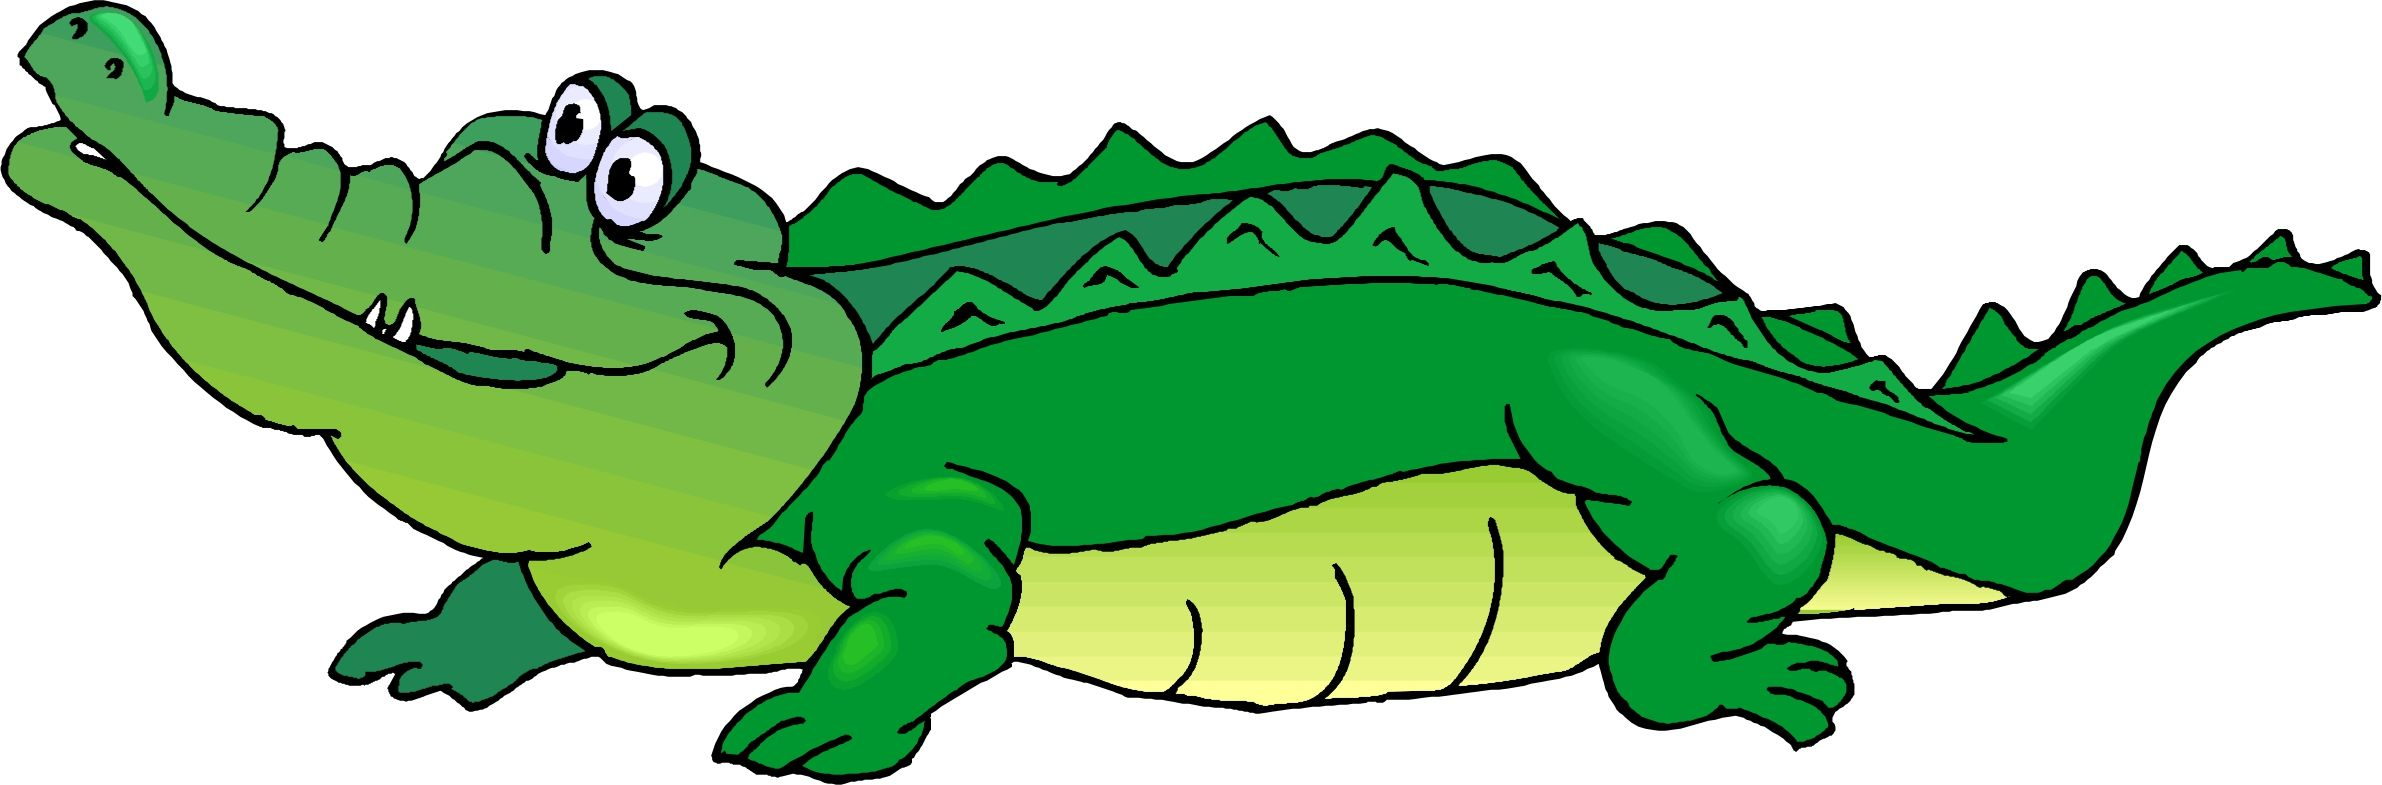 gator clip art use these free images for your websites art rh pinterest com crocodile clip art free crocodile clipart cartoon